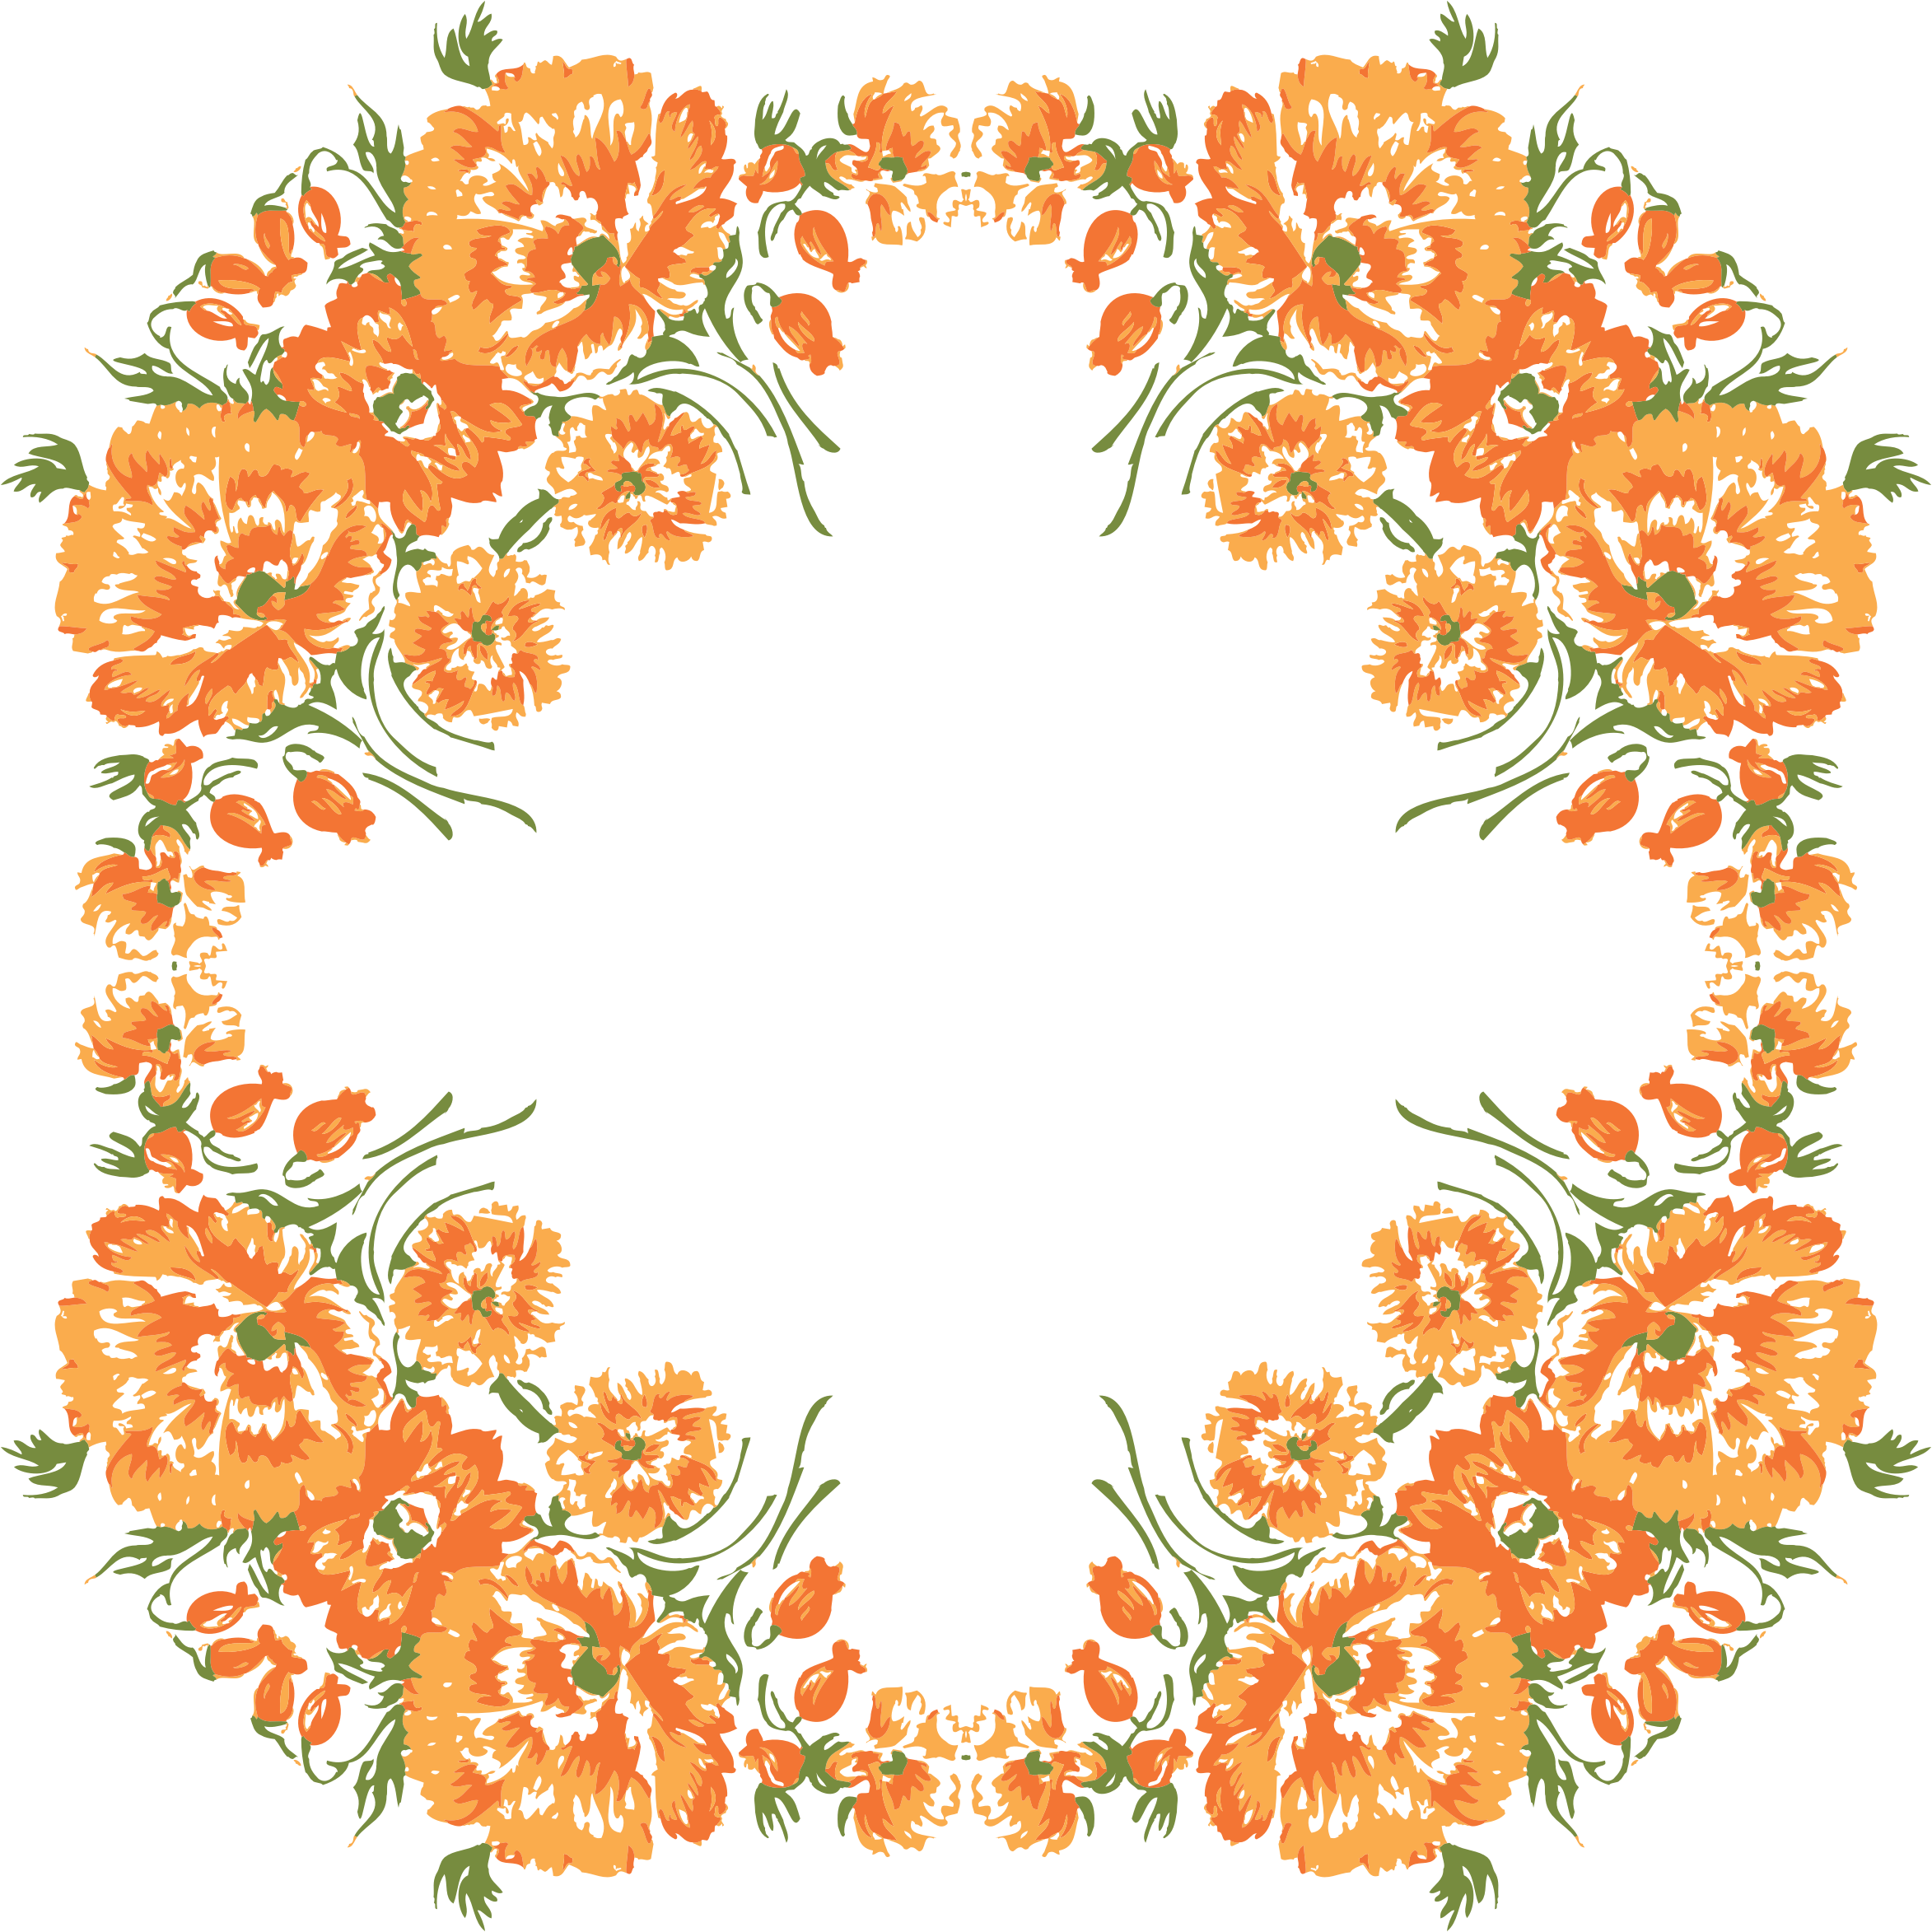 Flower clipart wreath. Floral frame icons png